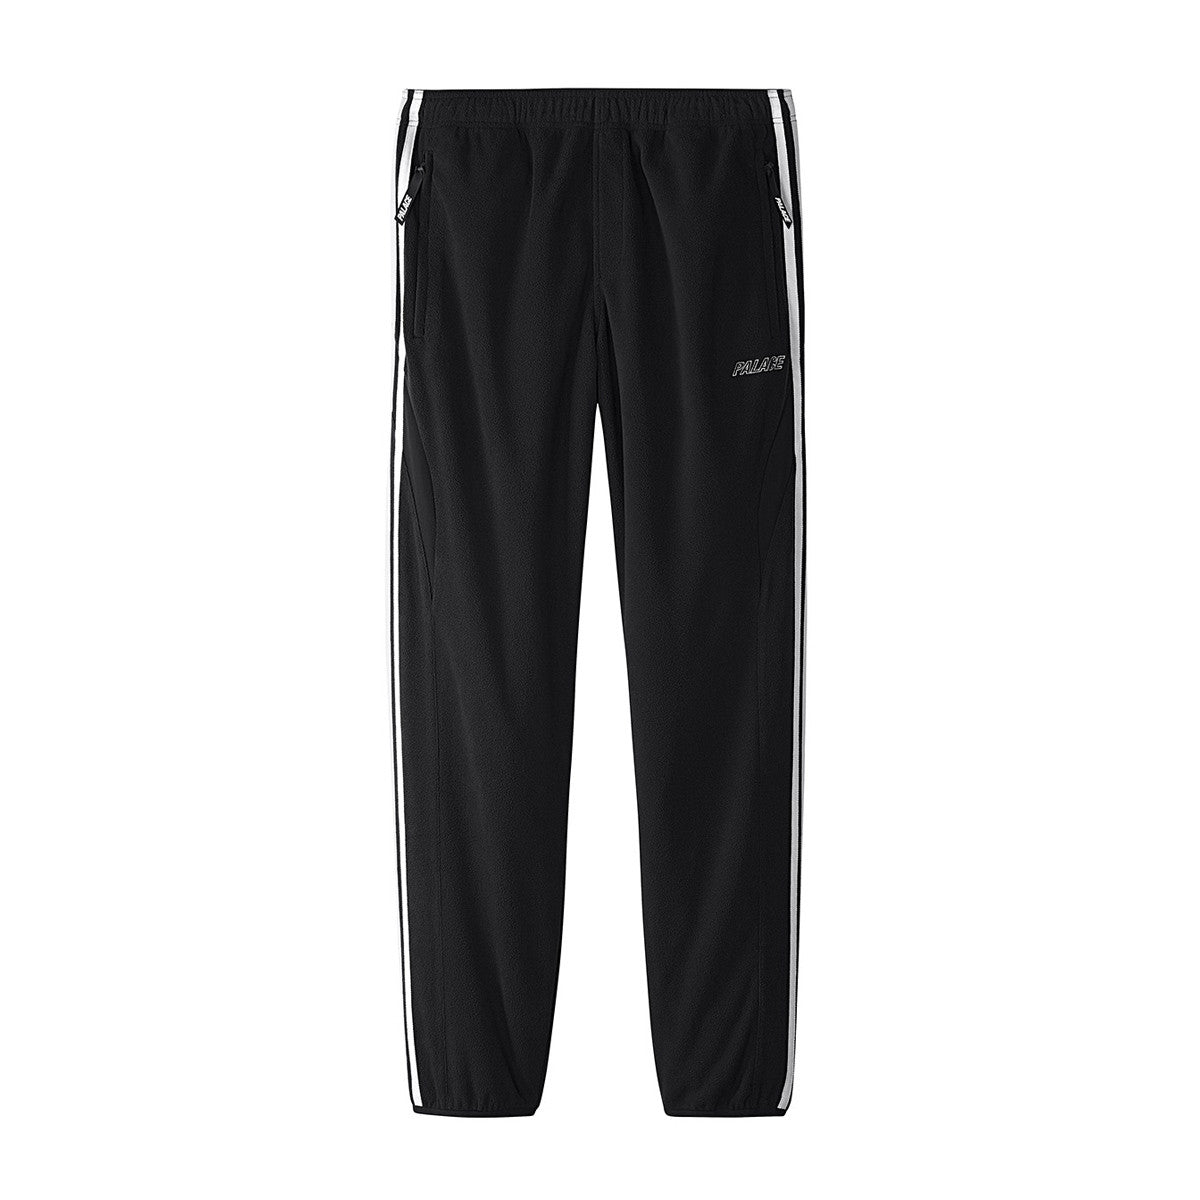 Adidas x Palace Fleece Sweatpants